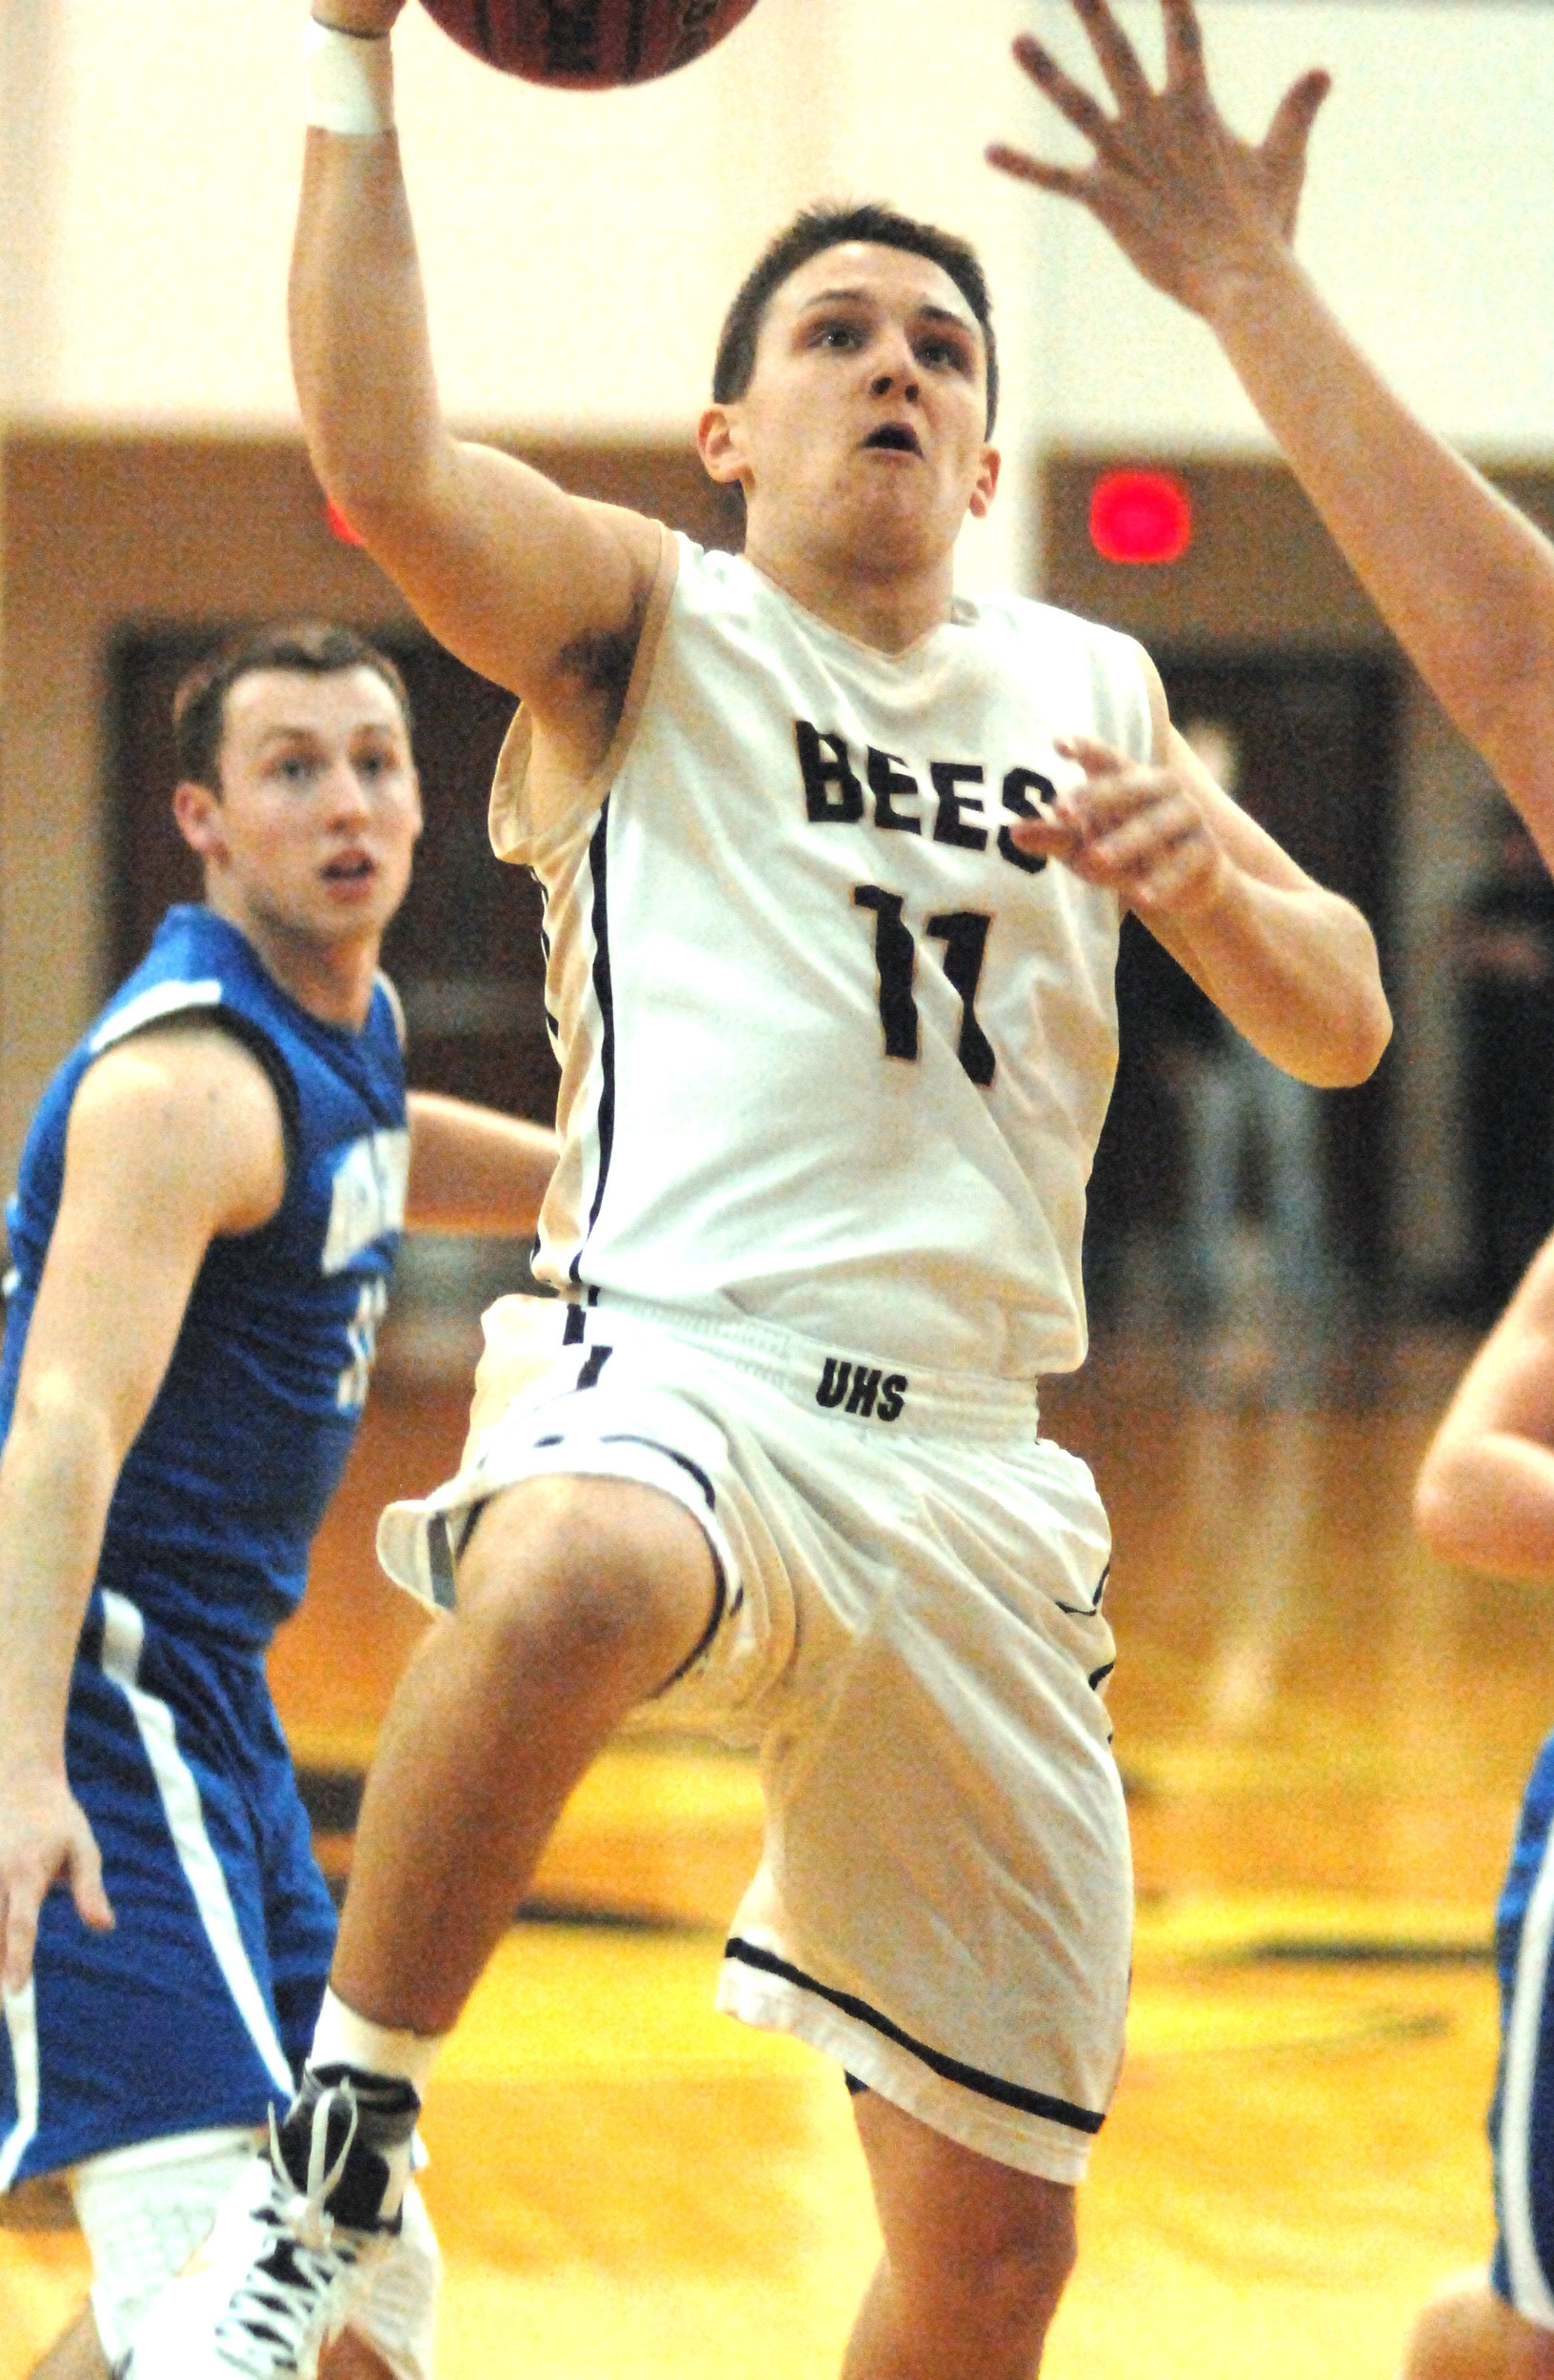 Upperman's Austyn McWilliams soars to the basket for a layup during ...